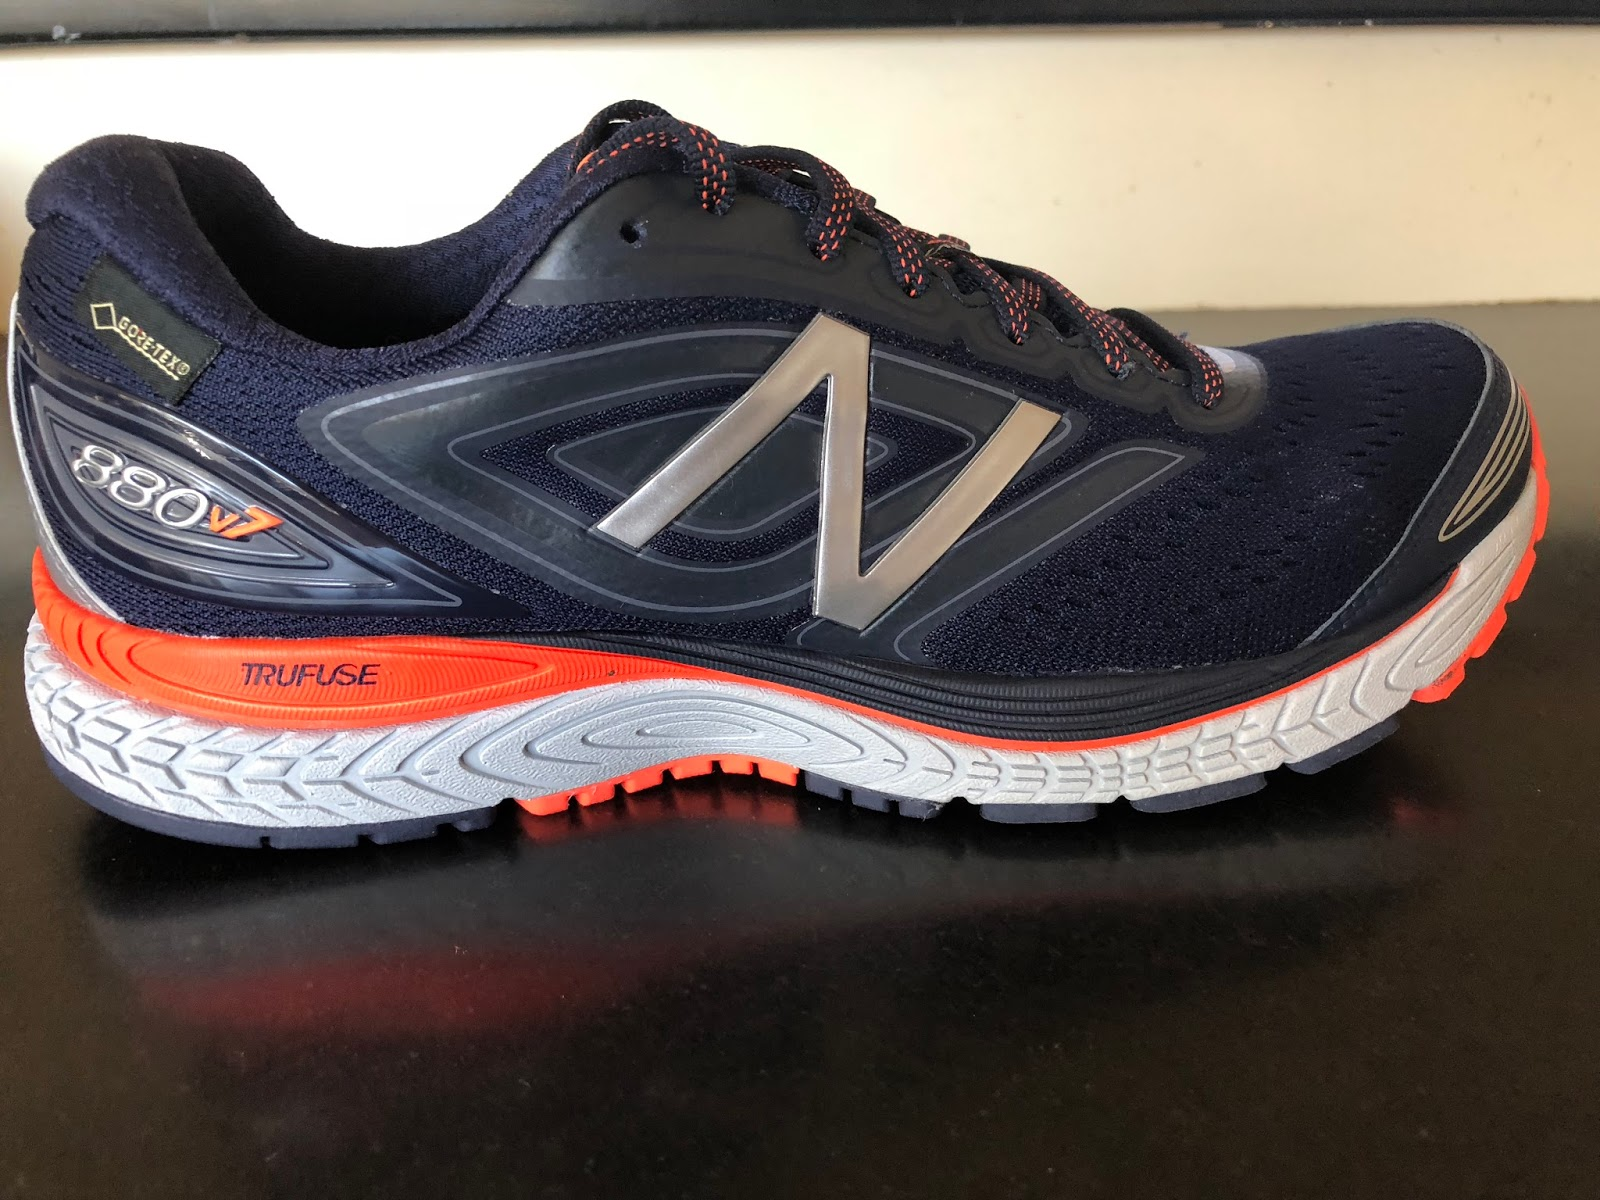 920fe9d3f51be Weight: Non Gore-Tex 880v7 official US M9 11 oz/312 g. GTX version test  sample US M8.5 10.7 oz/304 g. Drop: 10mm. Available now. GTX $135 Standard  $125